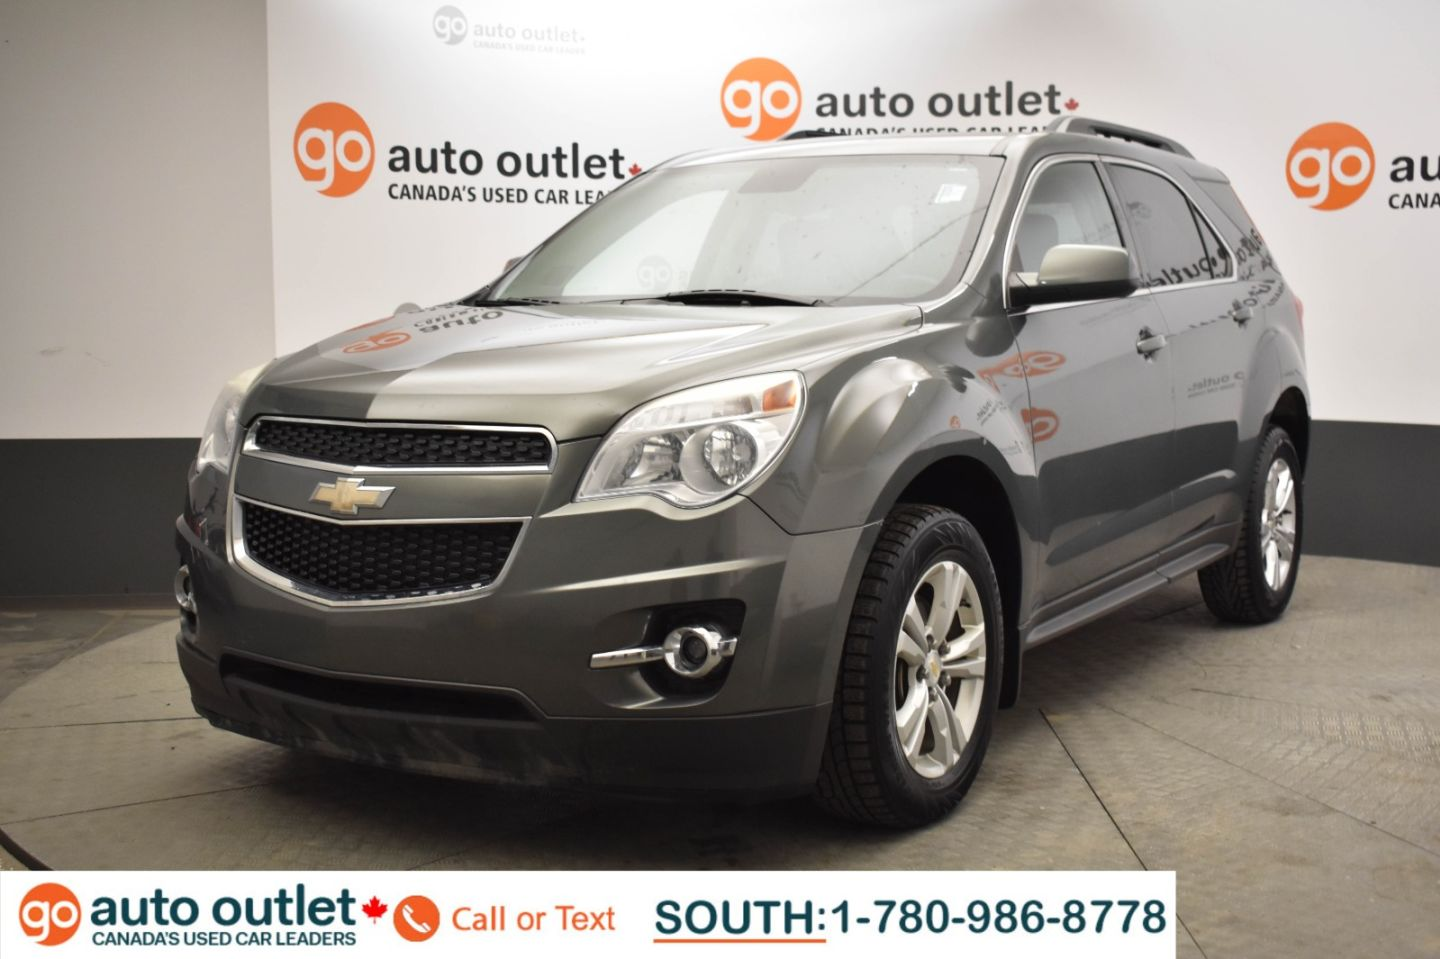 2012 Chevrolet Equinox 1LT for sale in Leduc, Alberta